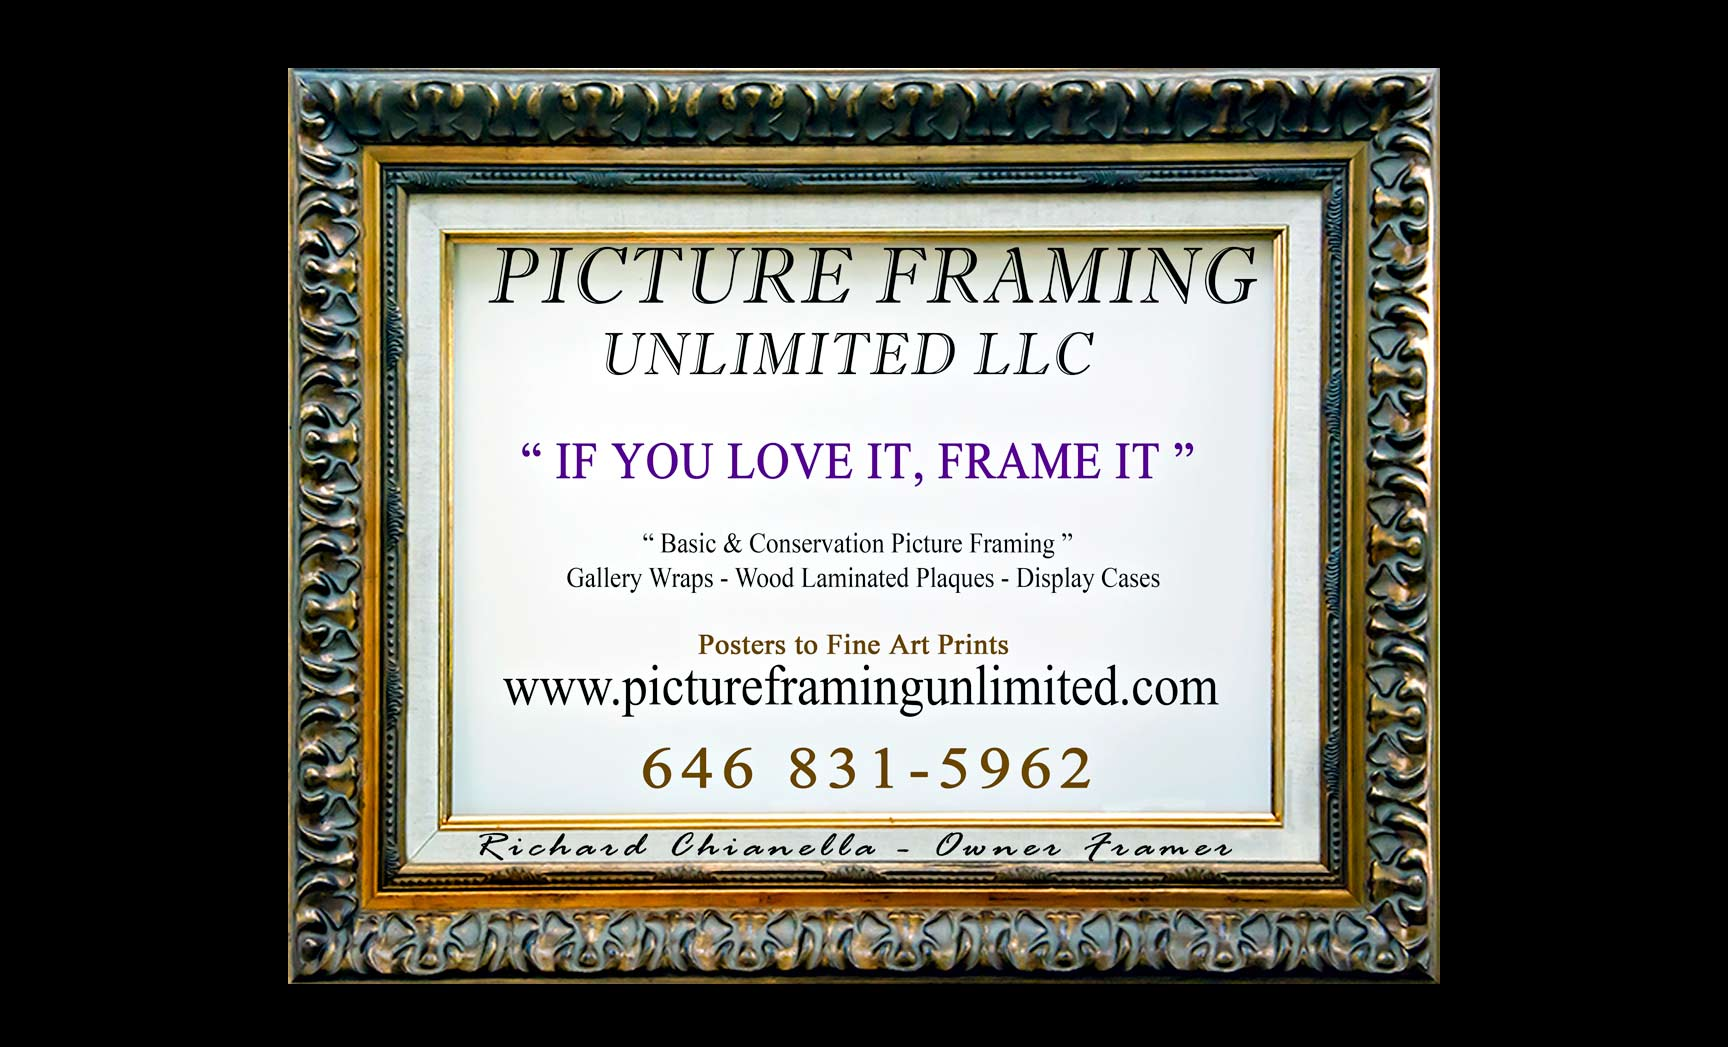 Picture Framing Unlimited